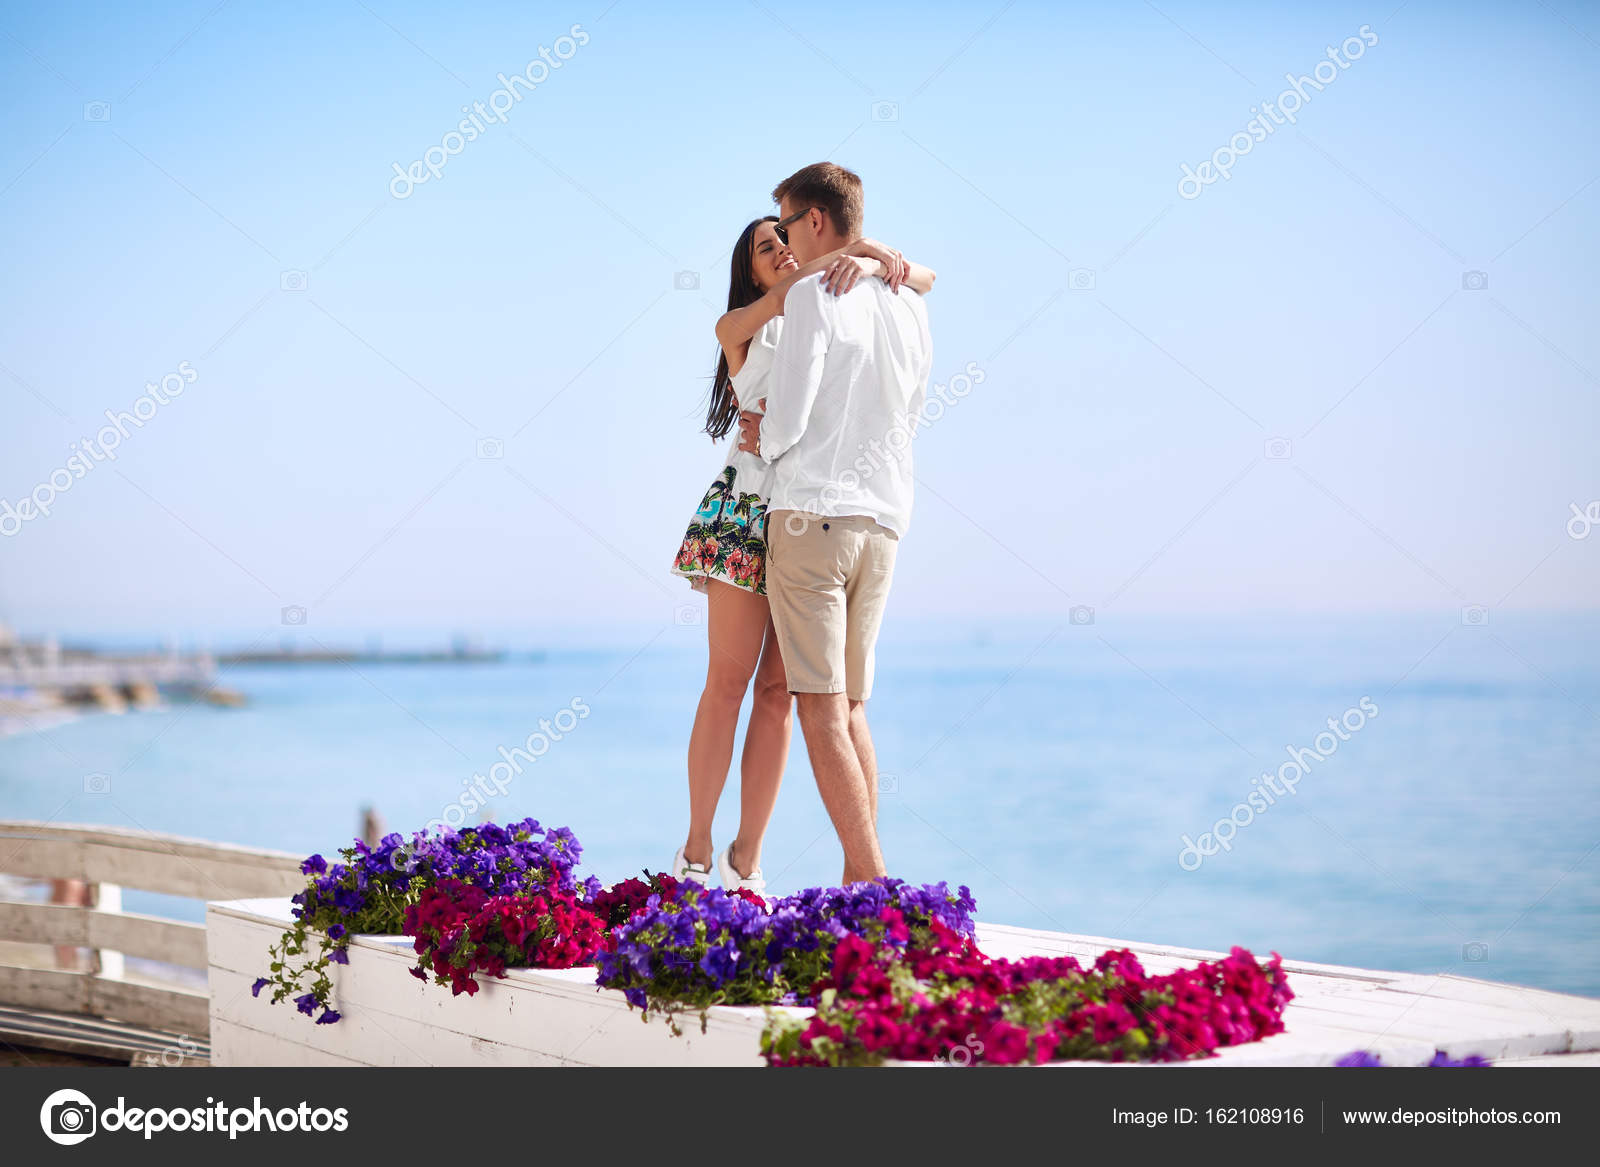 Happy girlfriend and boyfriend hugging near pink and purple flowers. Lovers on a sea beach. Tourism and luxurious lifestyle concept. Copy space.